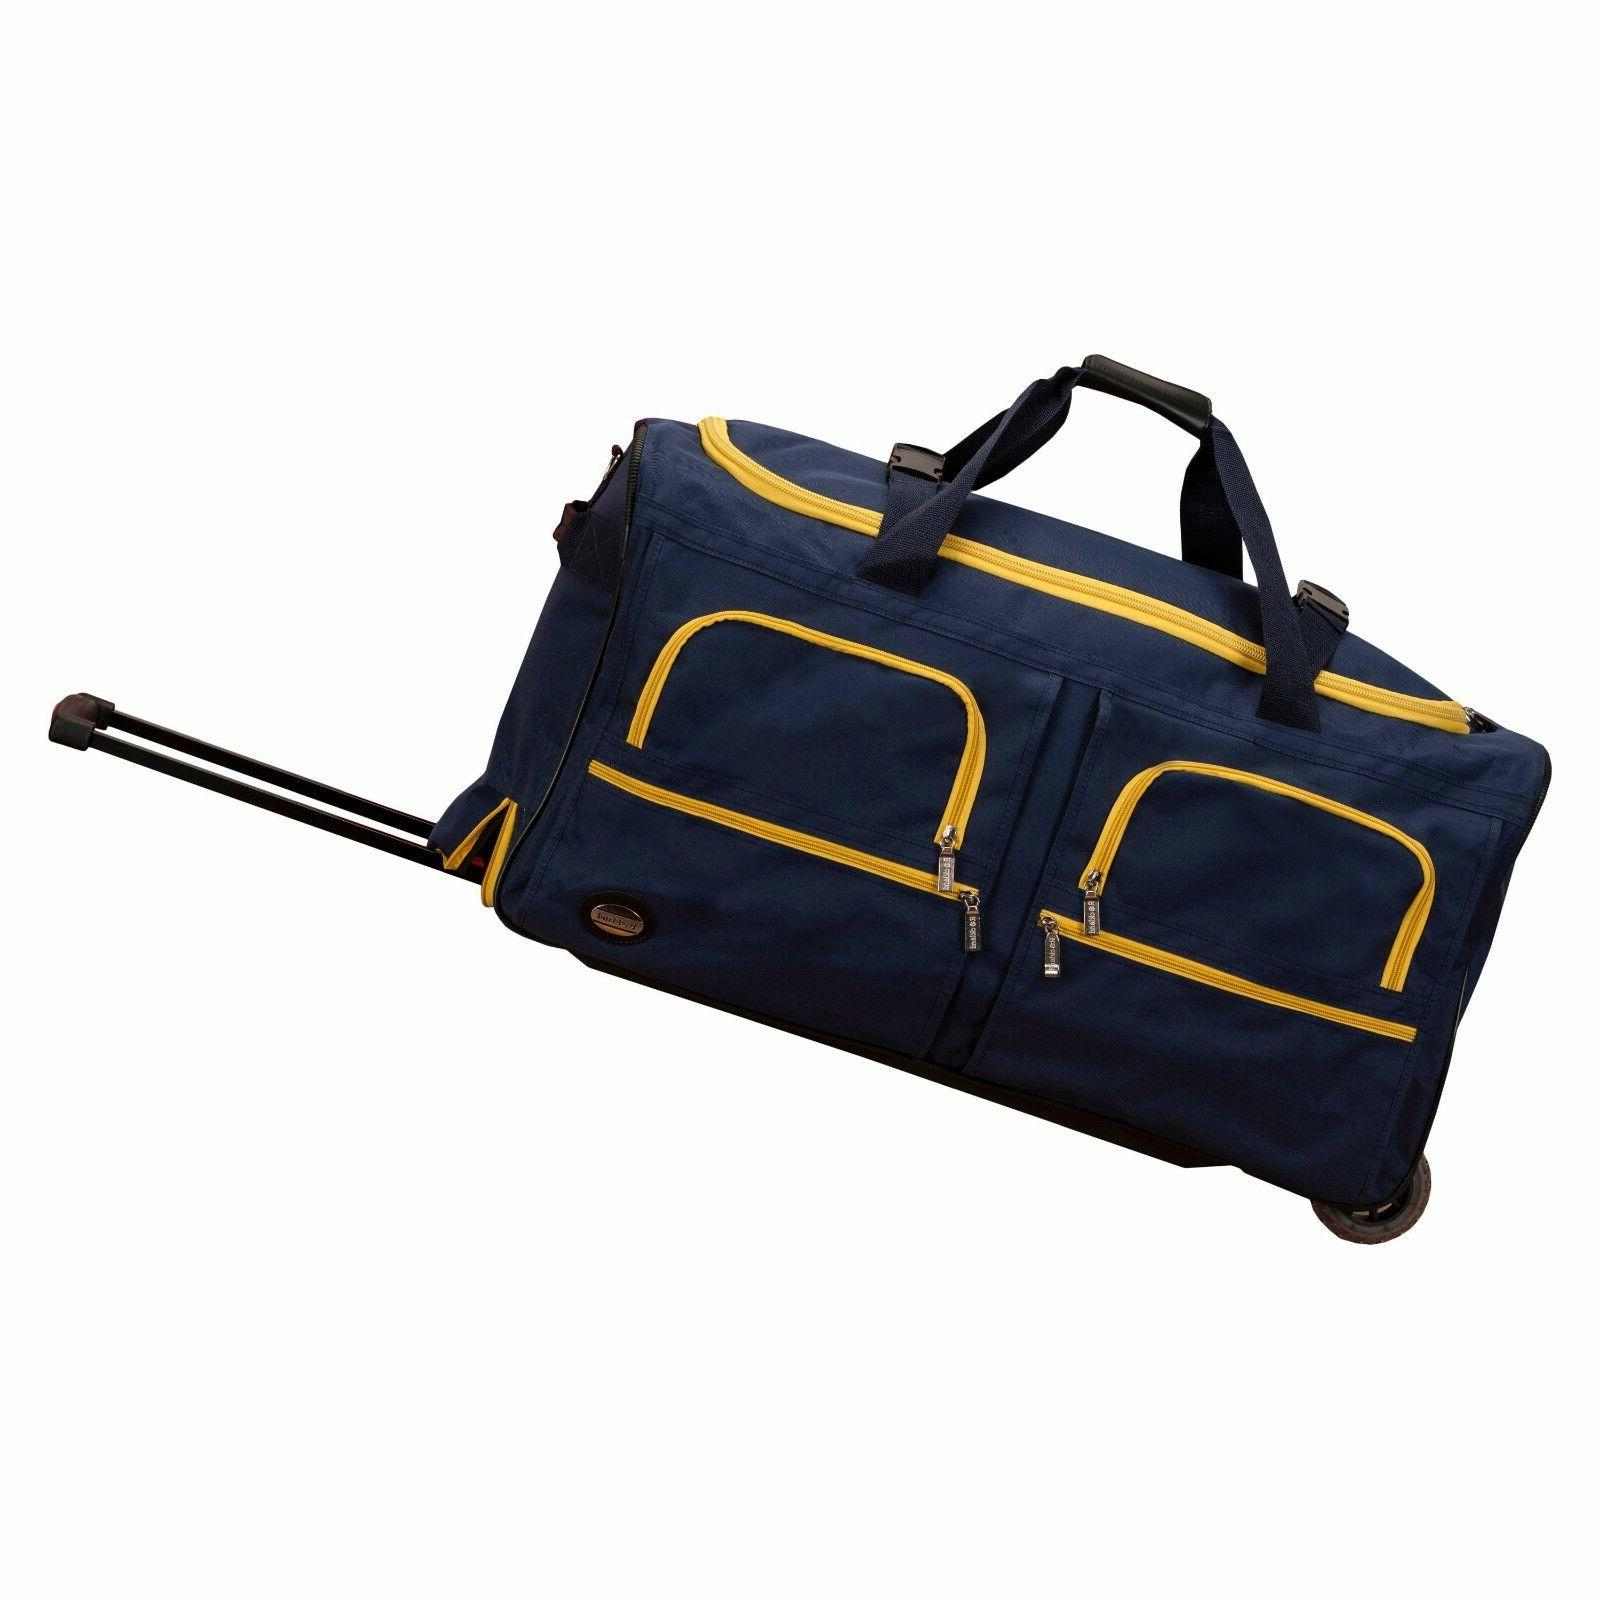 "Rockland Luggage 30"" Rolling Duffle Bag Navy Blue"